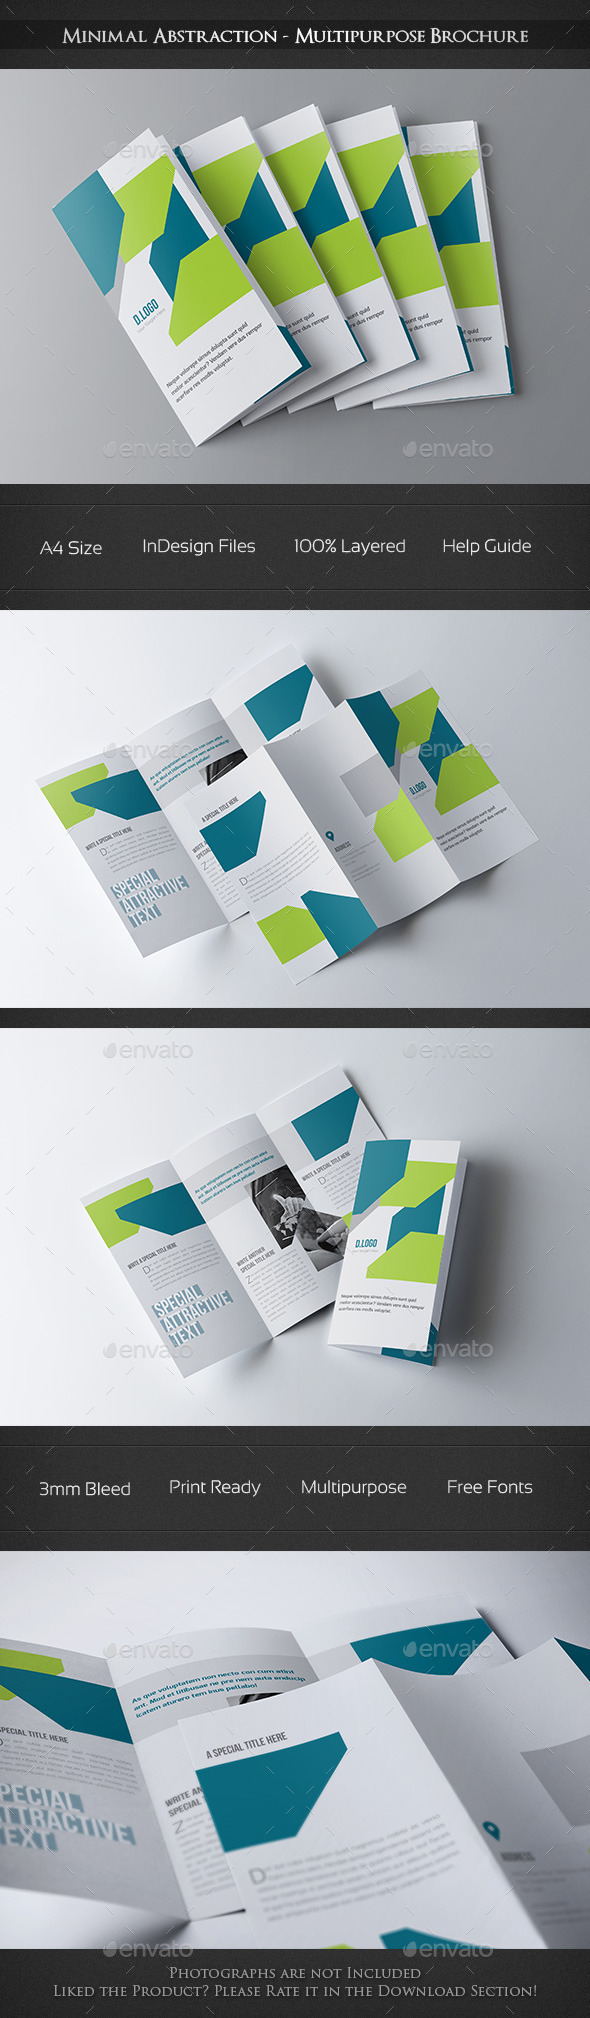 GraphicRiver Minimal Abstraction Multipurpose Brochure 10339316